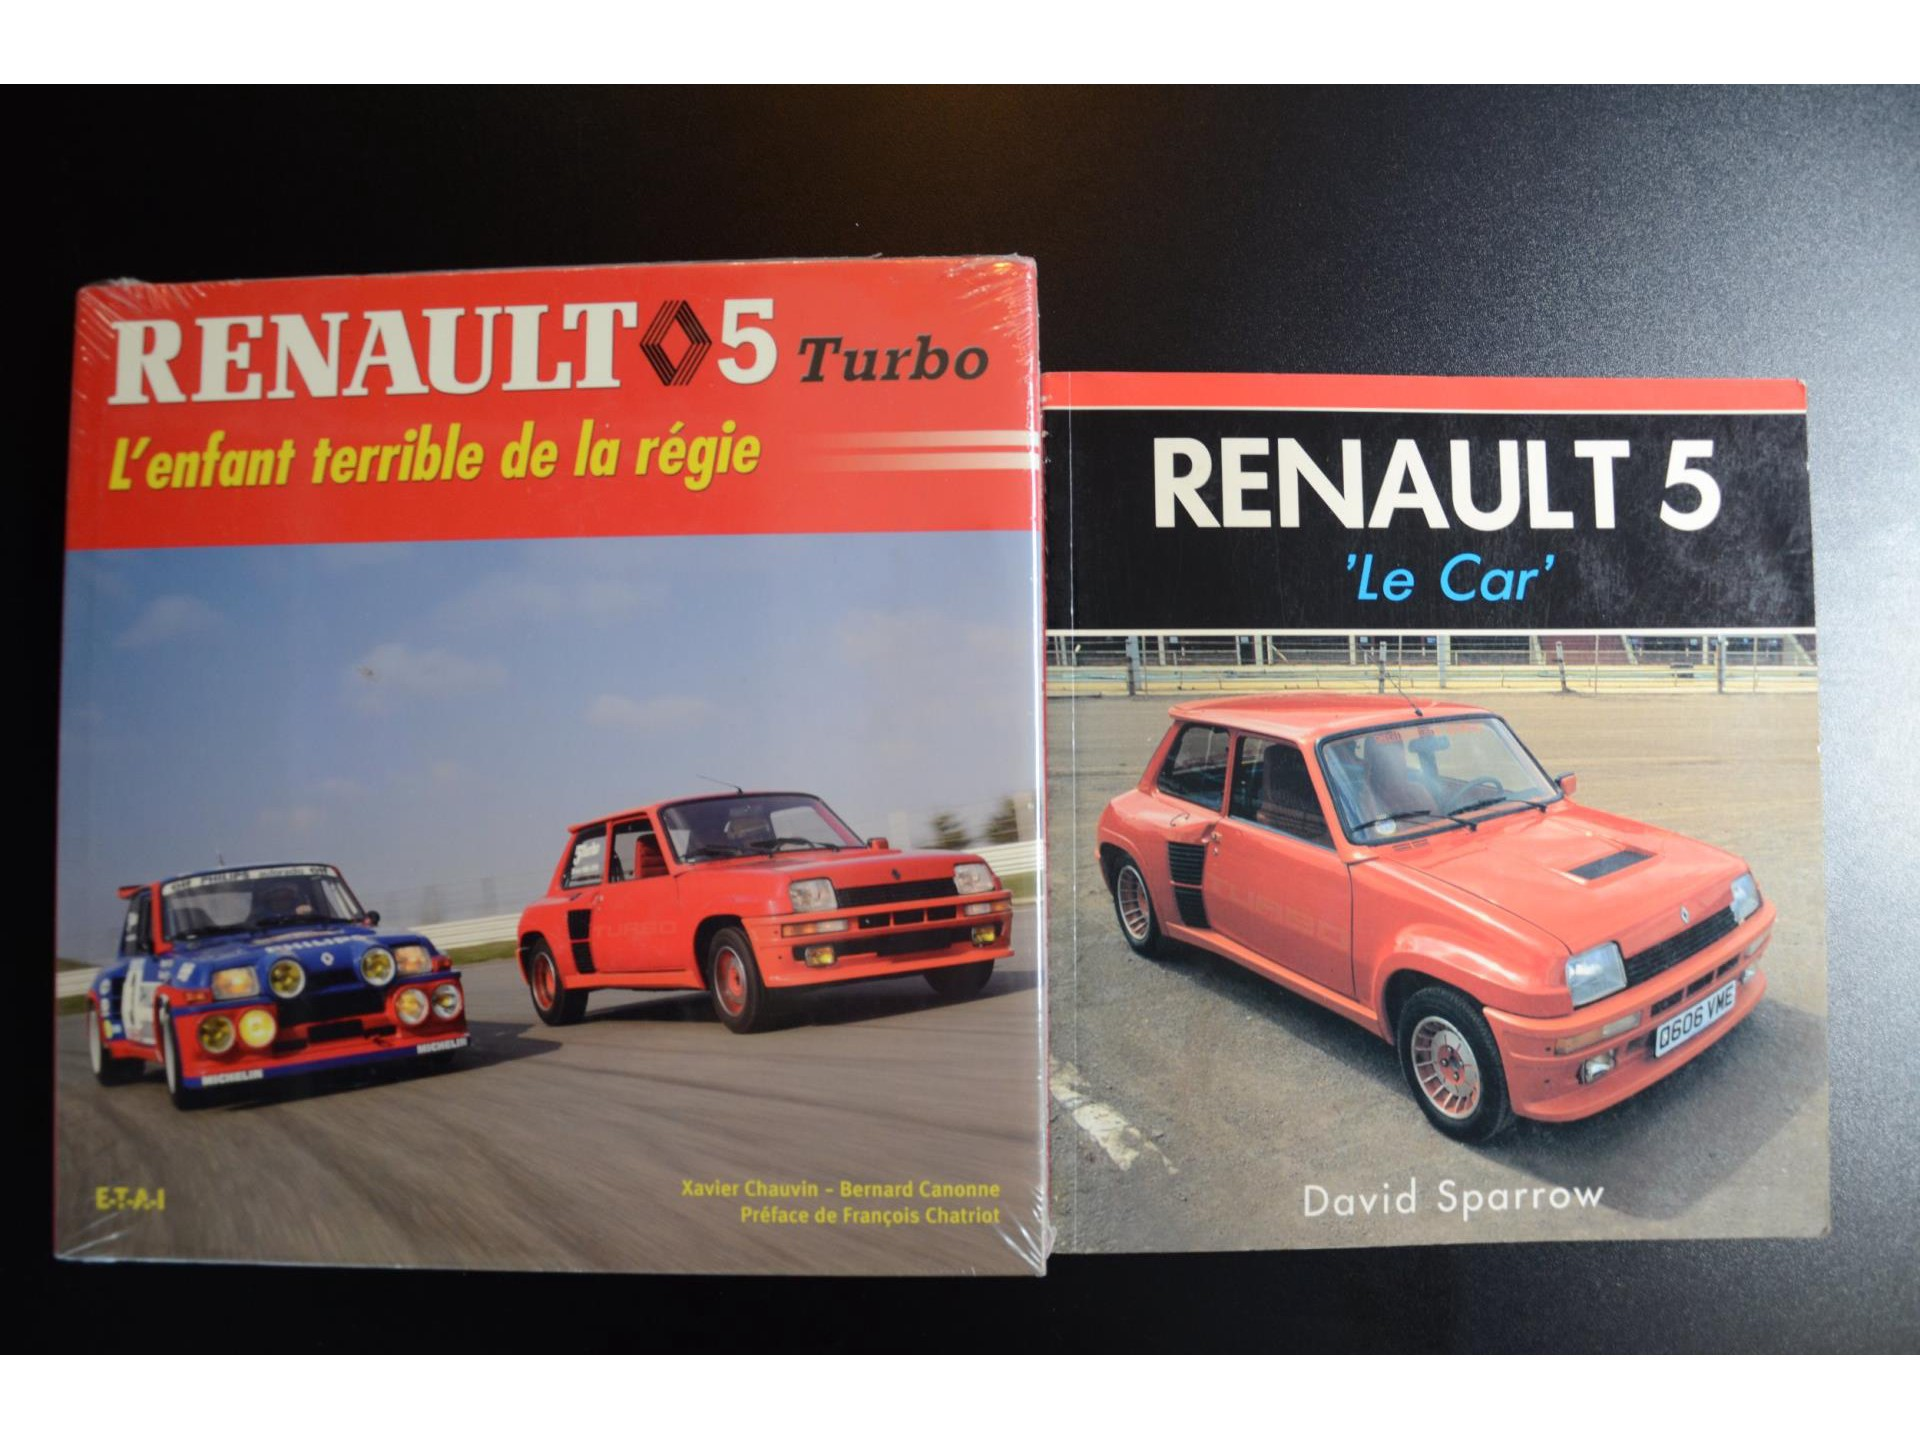 Renault-5-Turbo-Series-1-for-sale-84